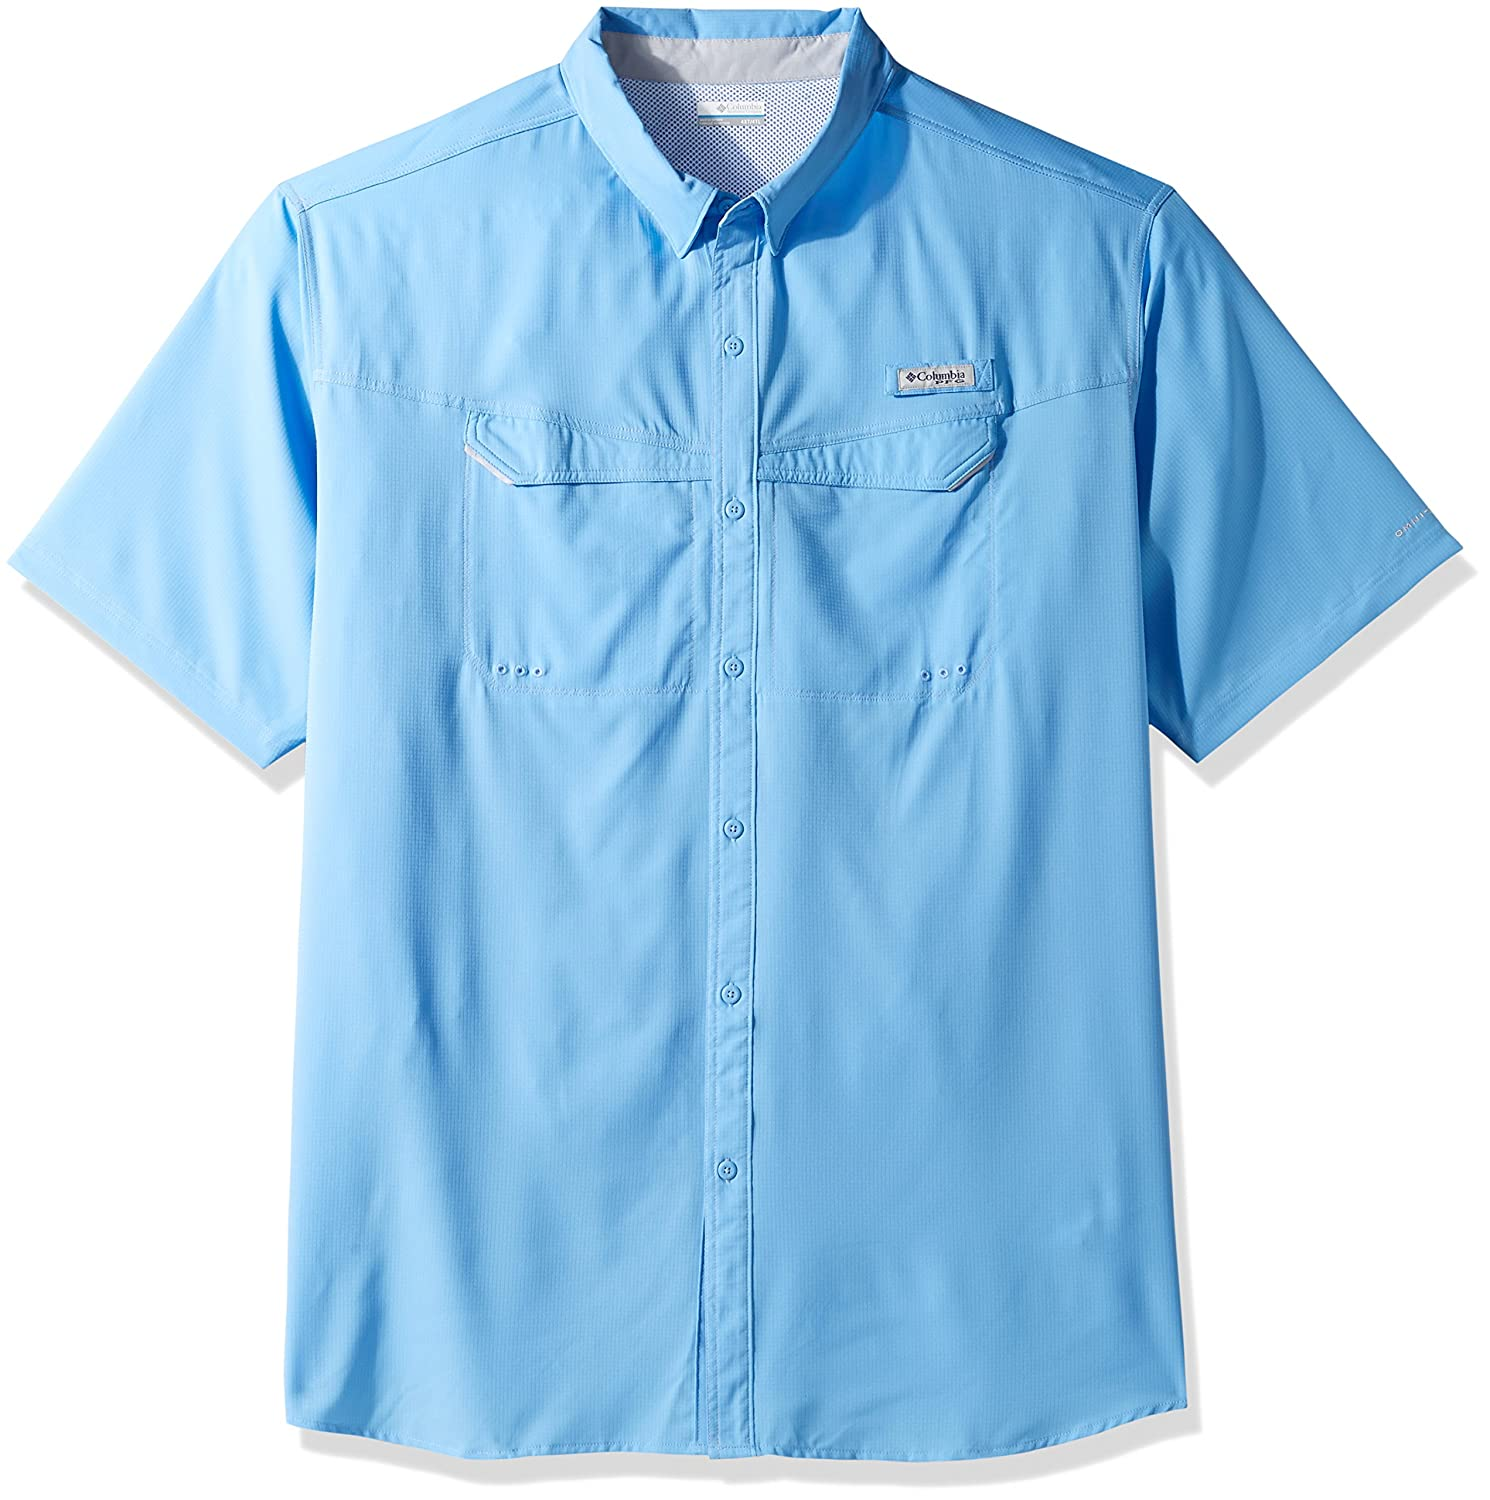 Columbia Men's Niedrig Drag Offshore Short Sleeve Shirt, Weiß, Large Tall